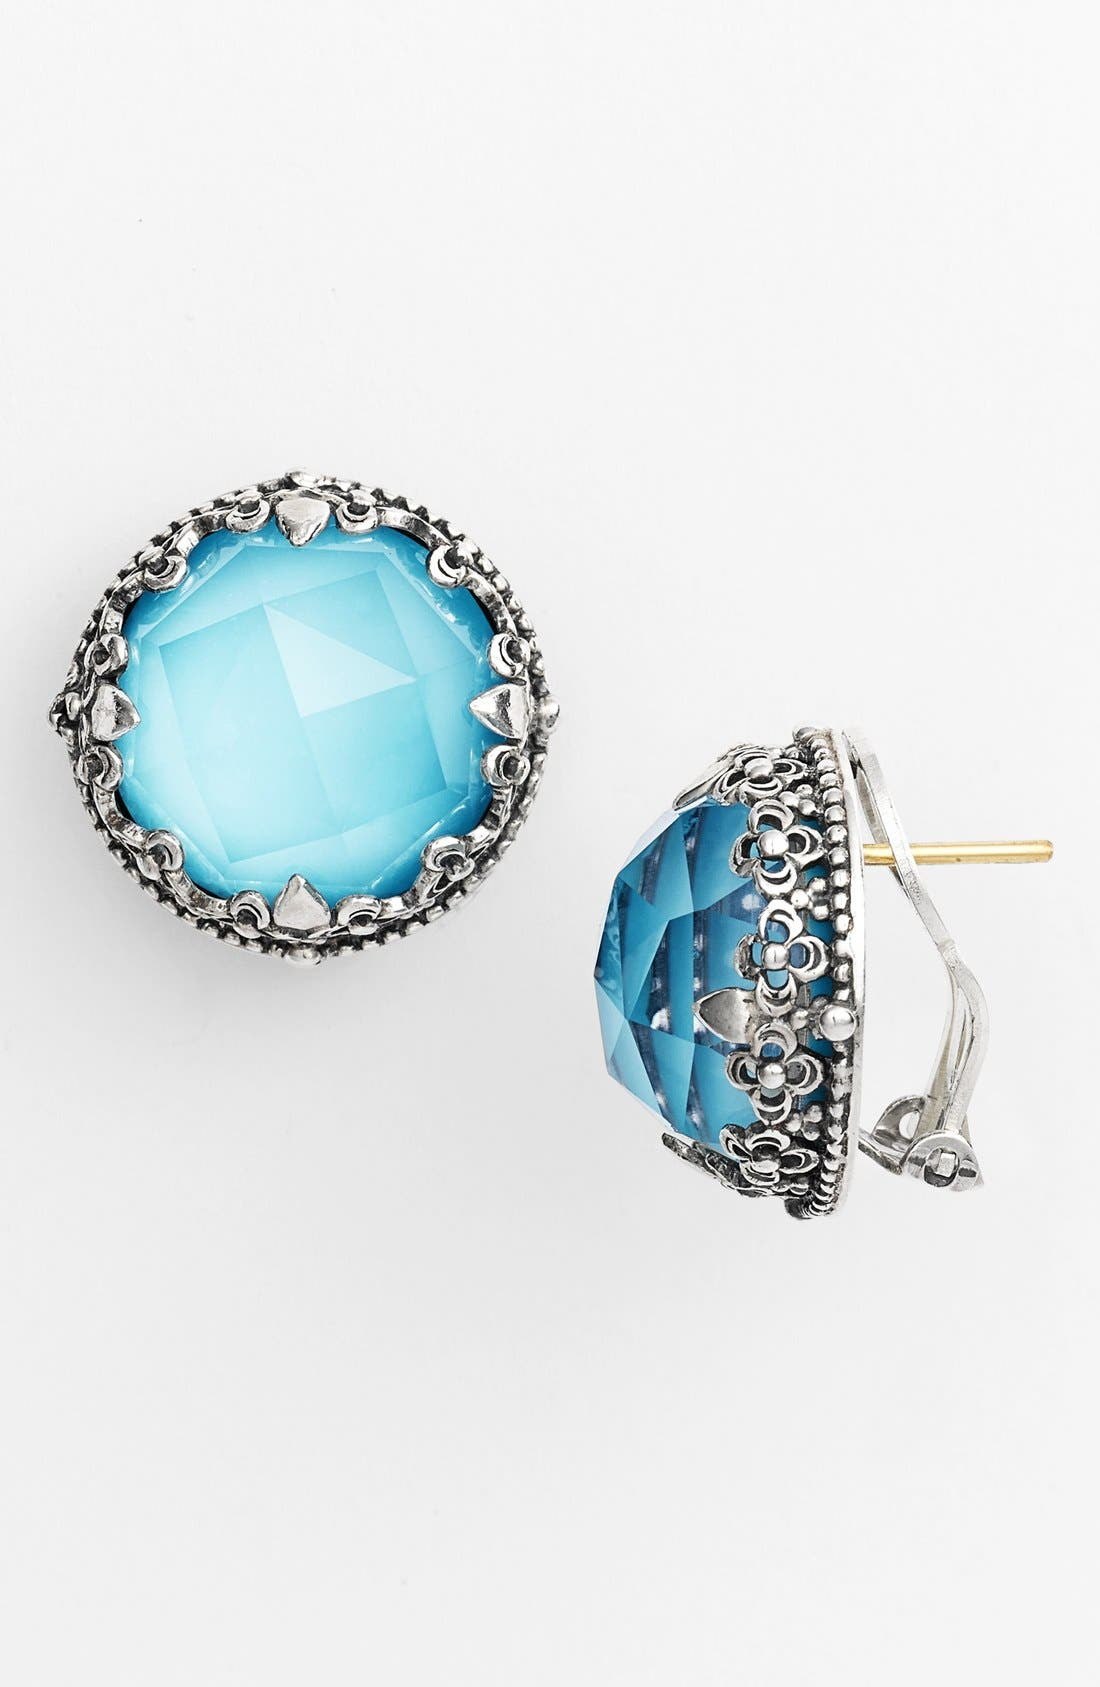 'Aegean' Stud Earrings,                         Main,                         color, Silver/ Turquoise